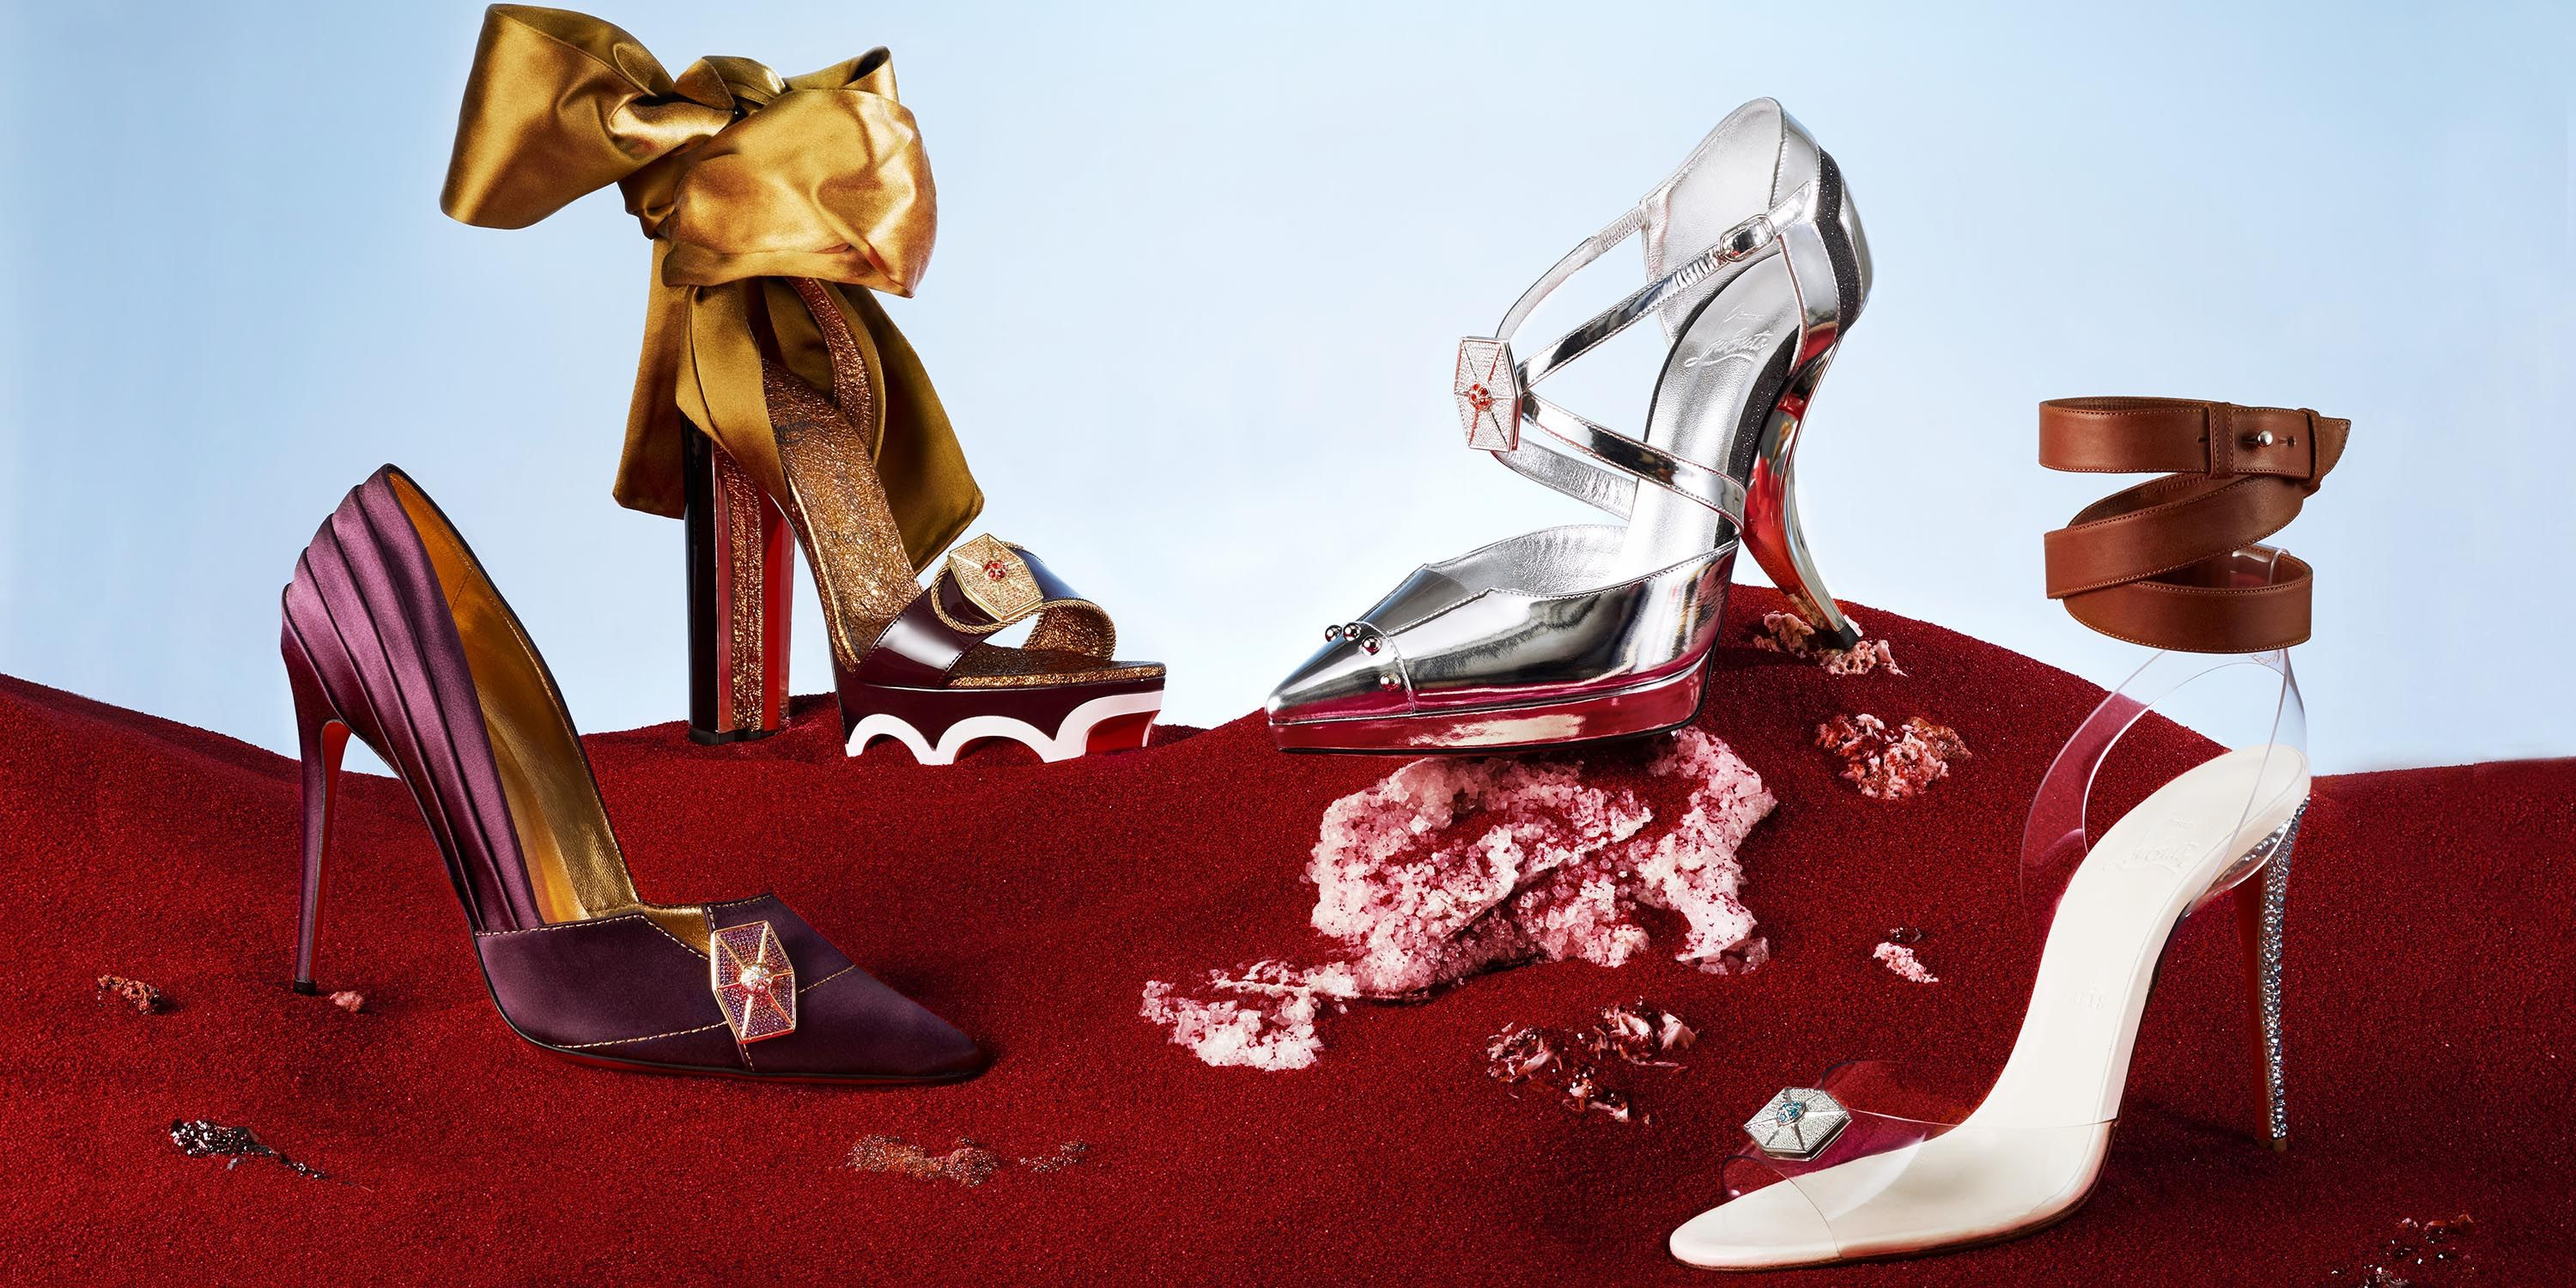 b53db8853d8 Christian Louboutin and Disney Collaborate on Star Wars Collection ...